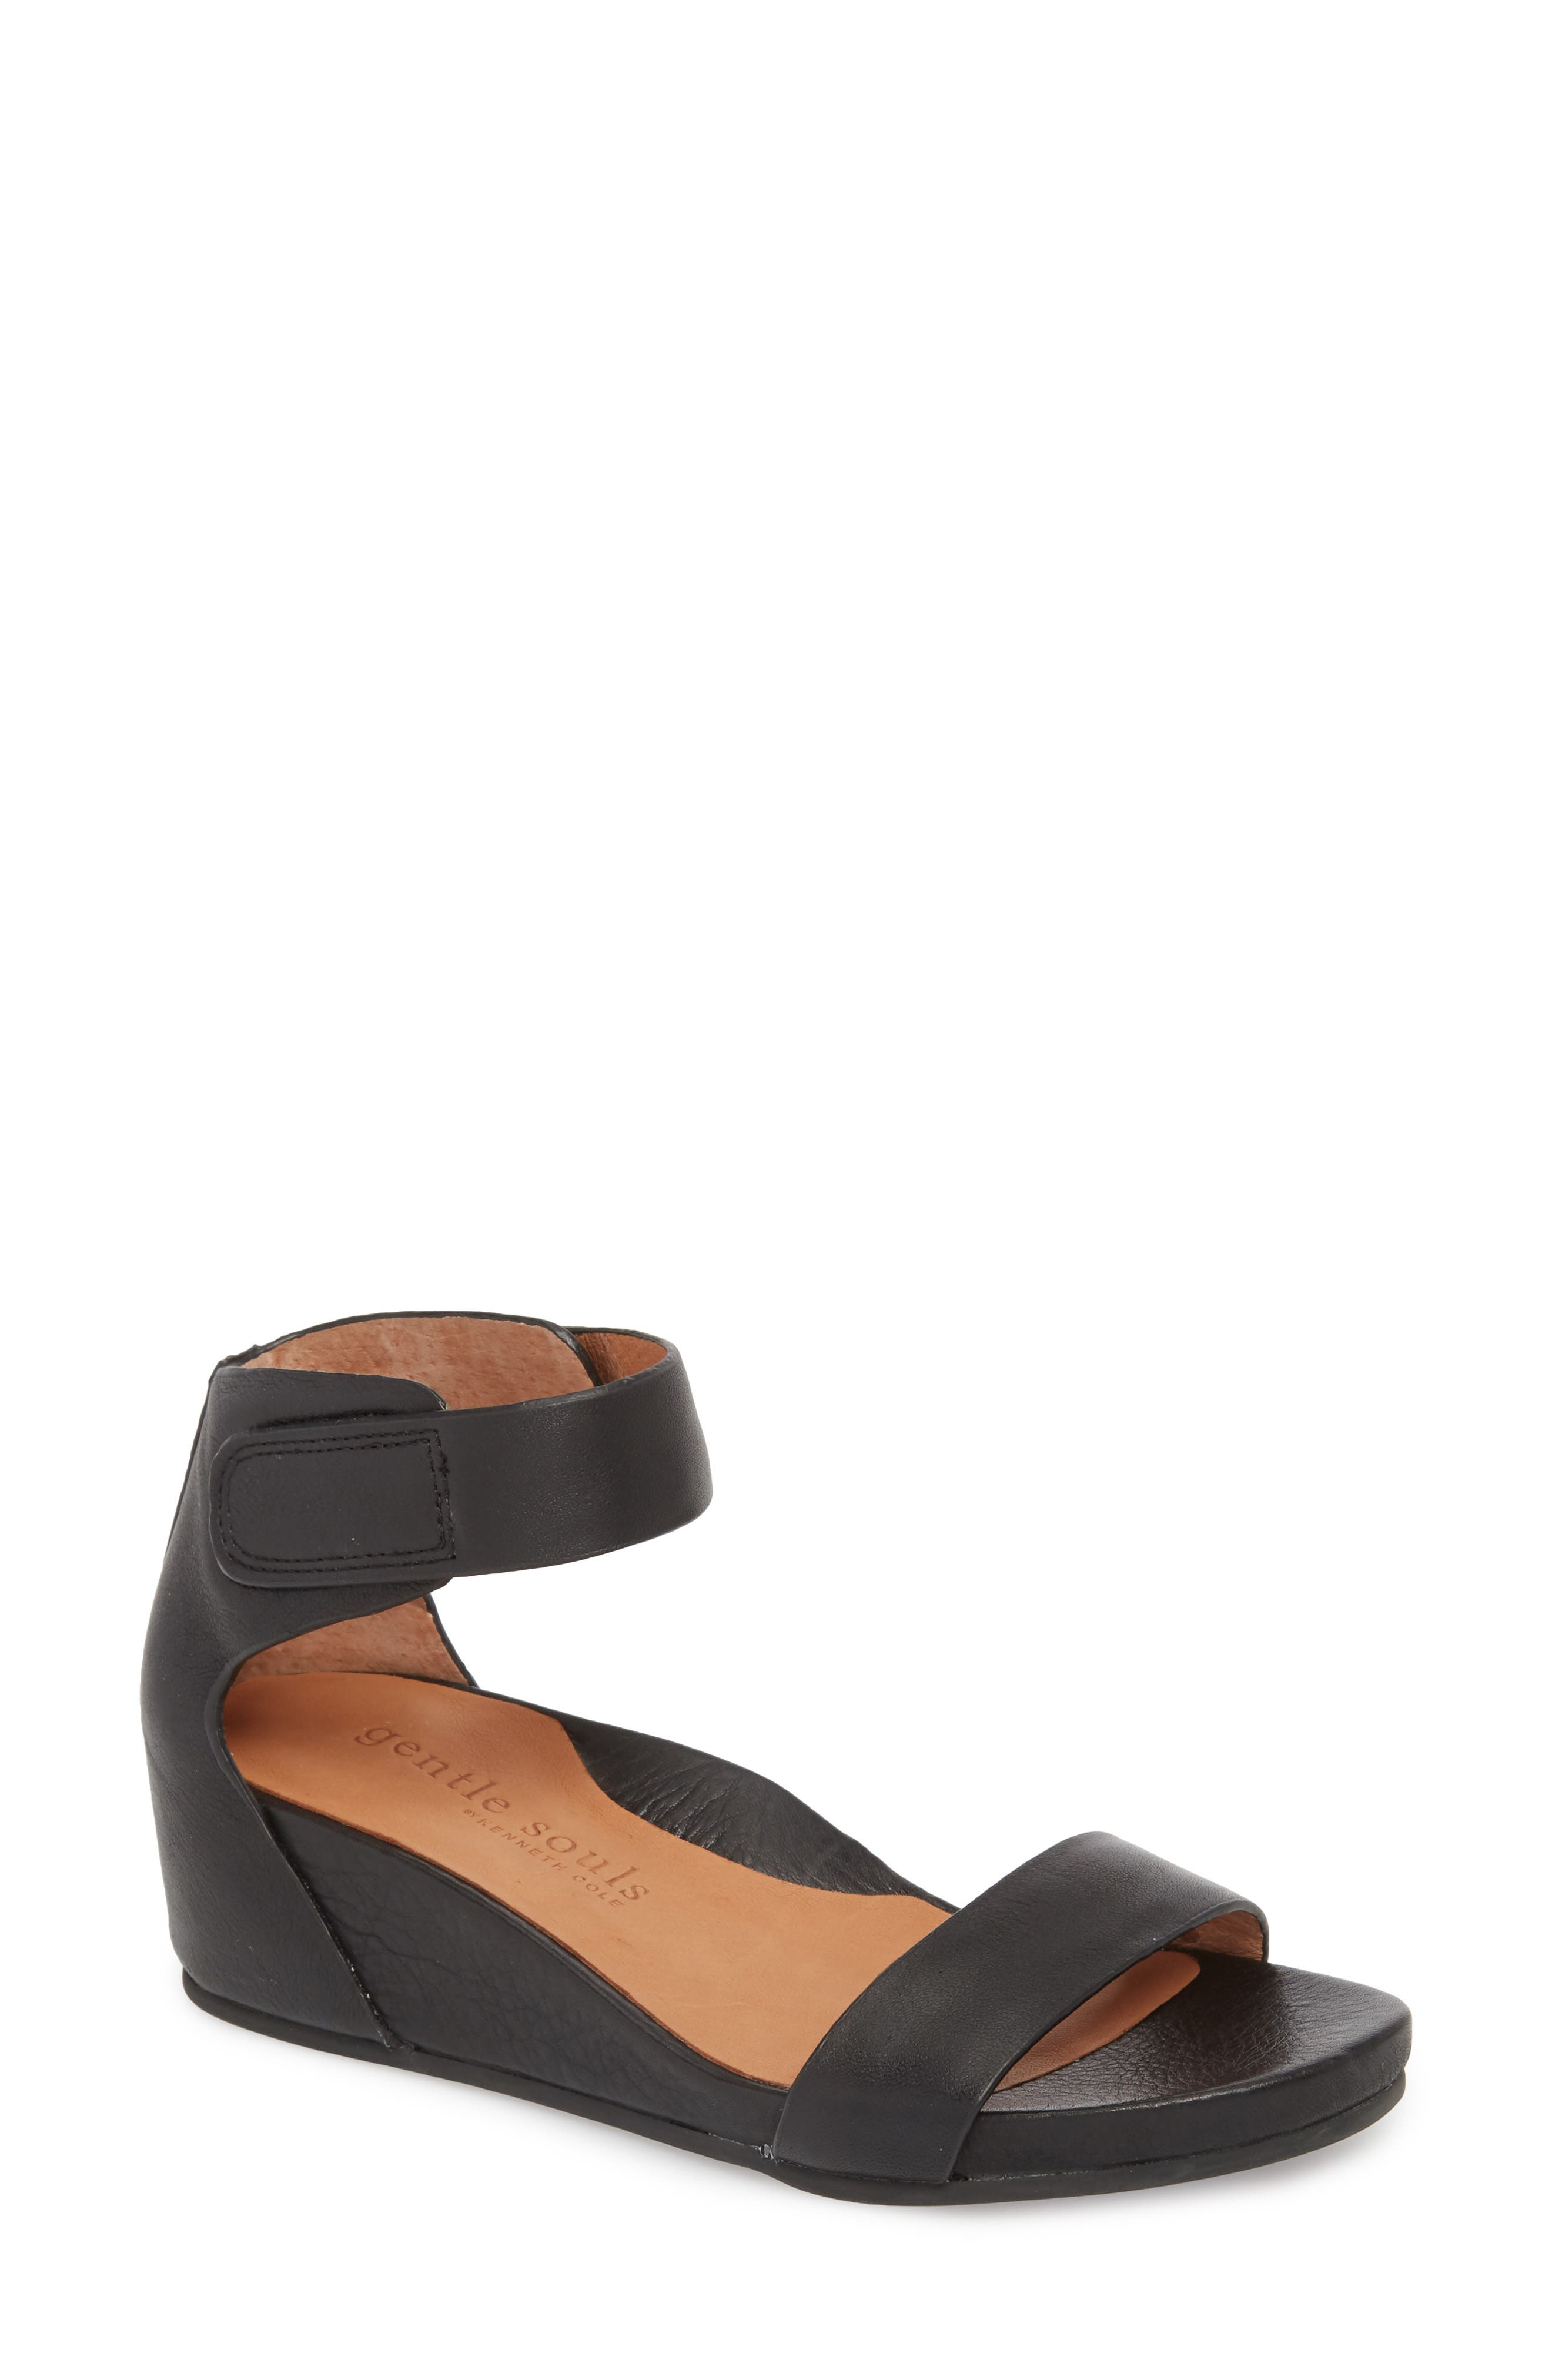 BY KENNETH COLE GIANNA WEDGE SANDAL